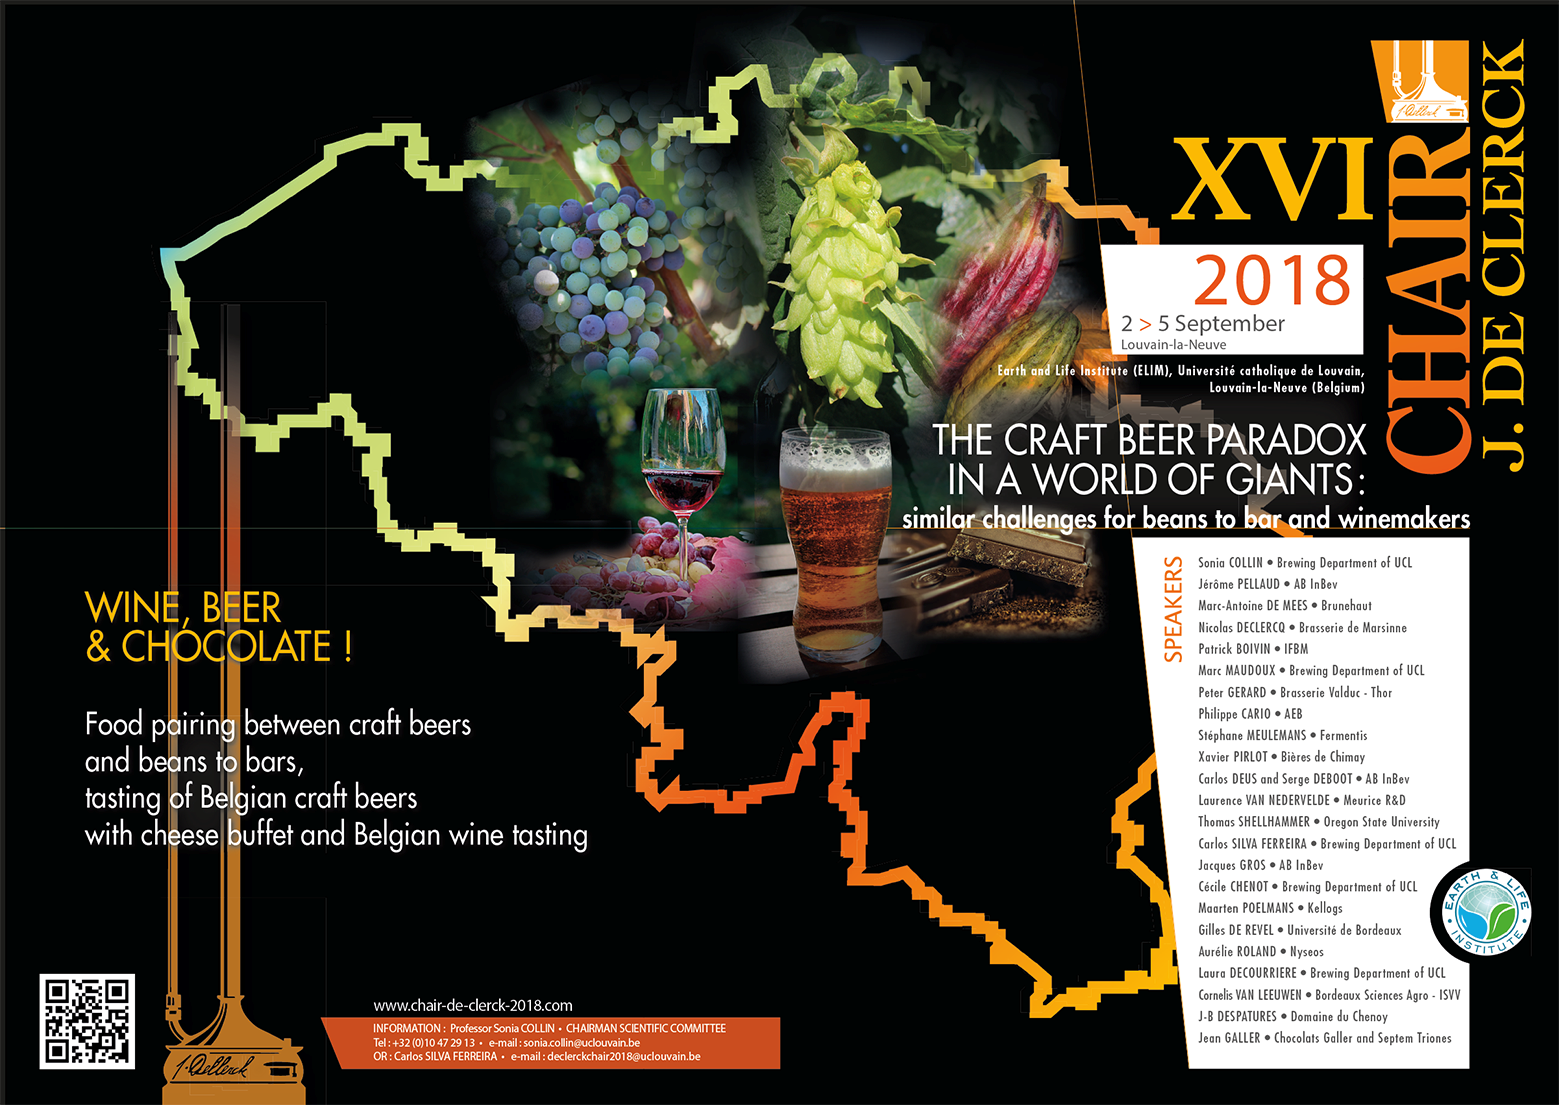 "Chair de Clerck ""The craft beer paradox in a world of giant"", 02-05 September, Louvain-la-Neuve, Belgium"